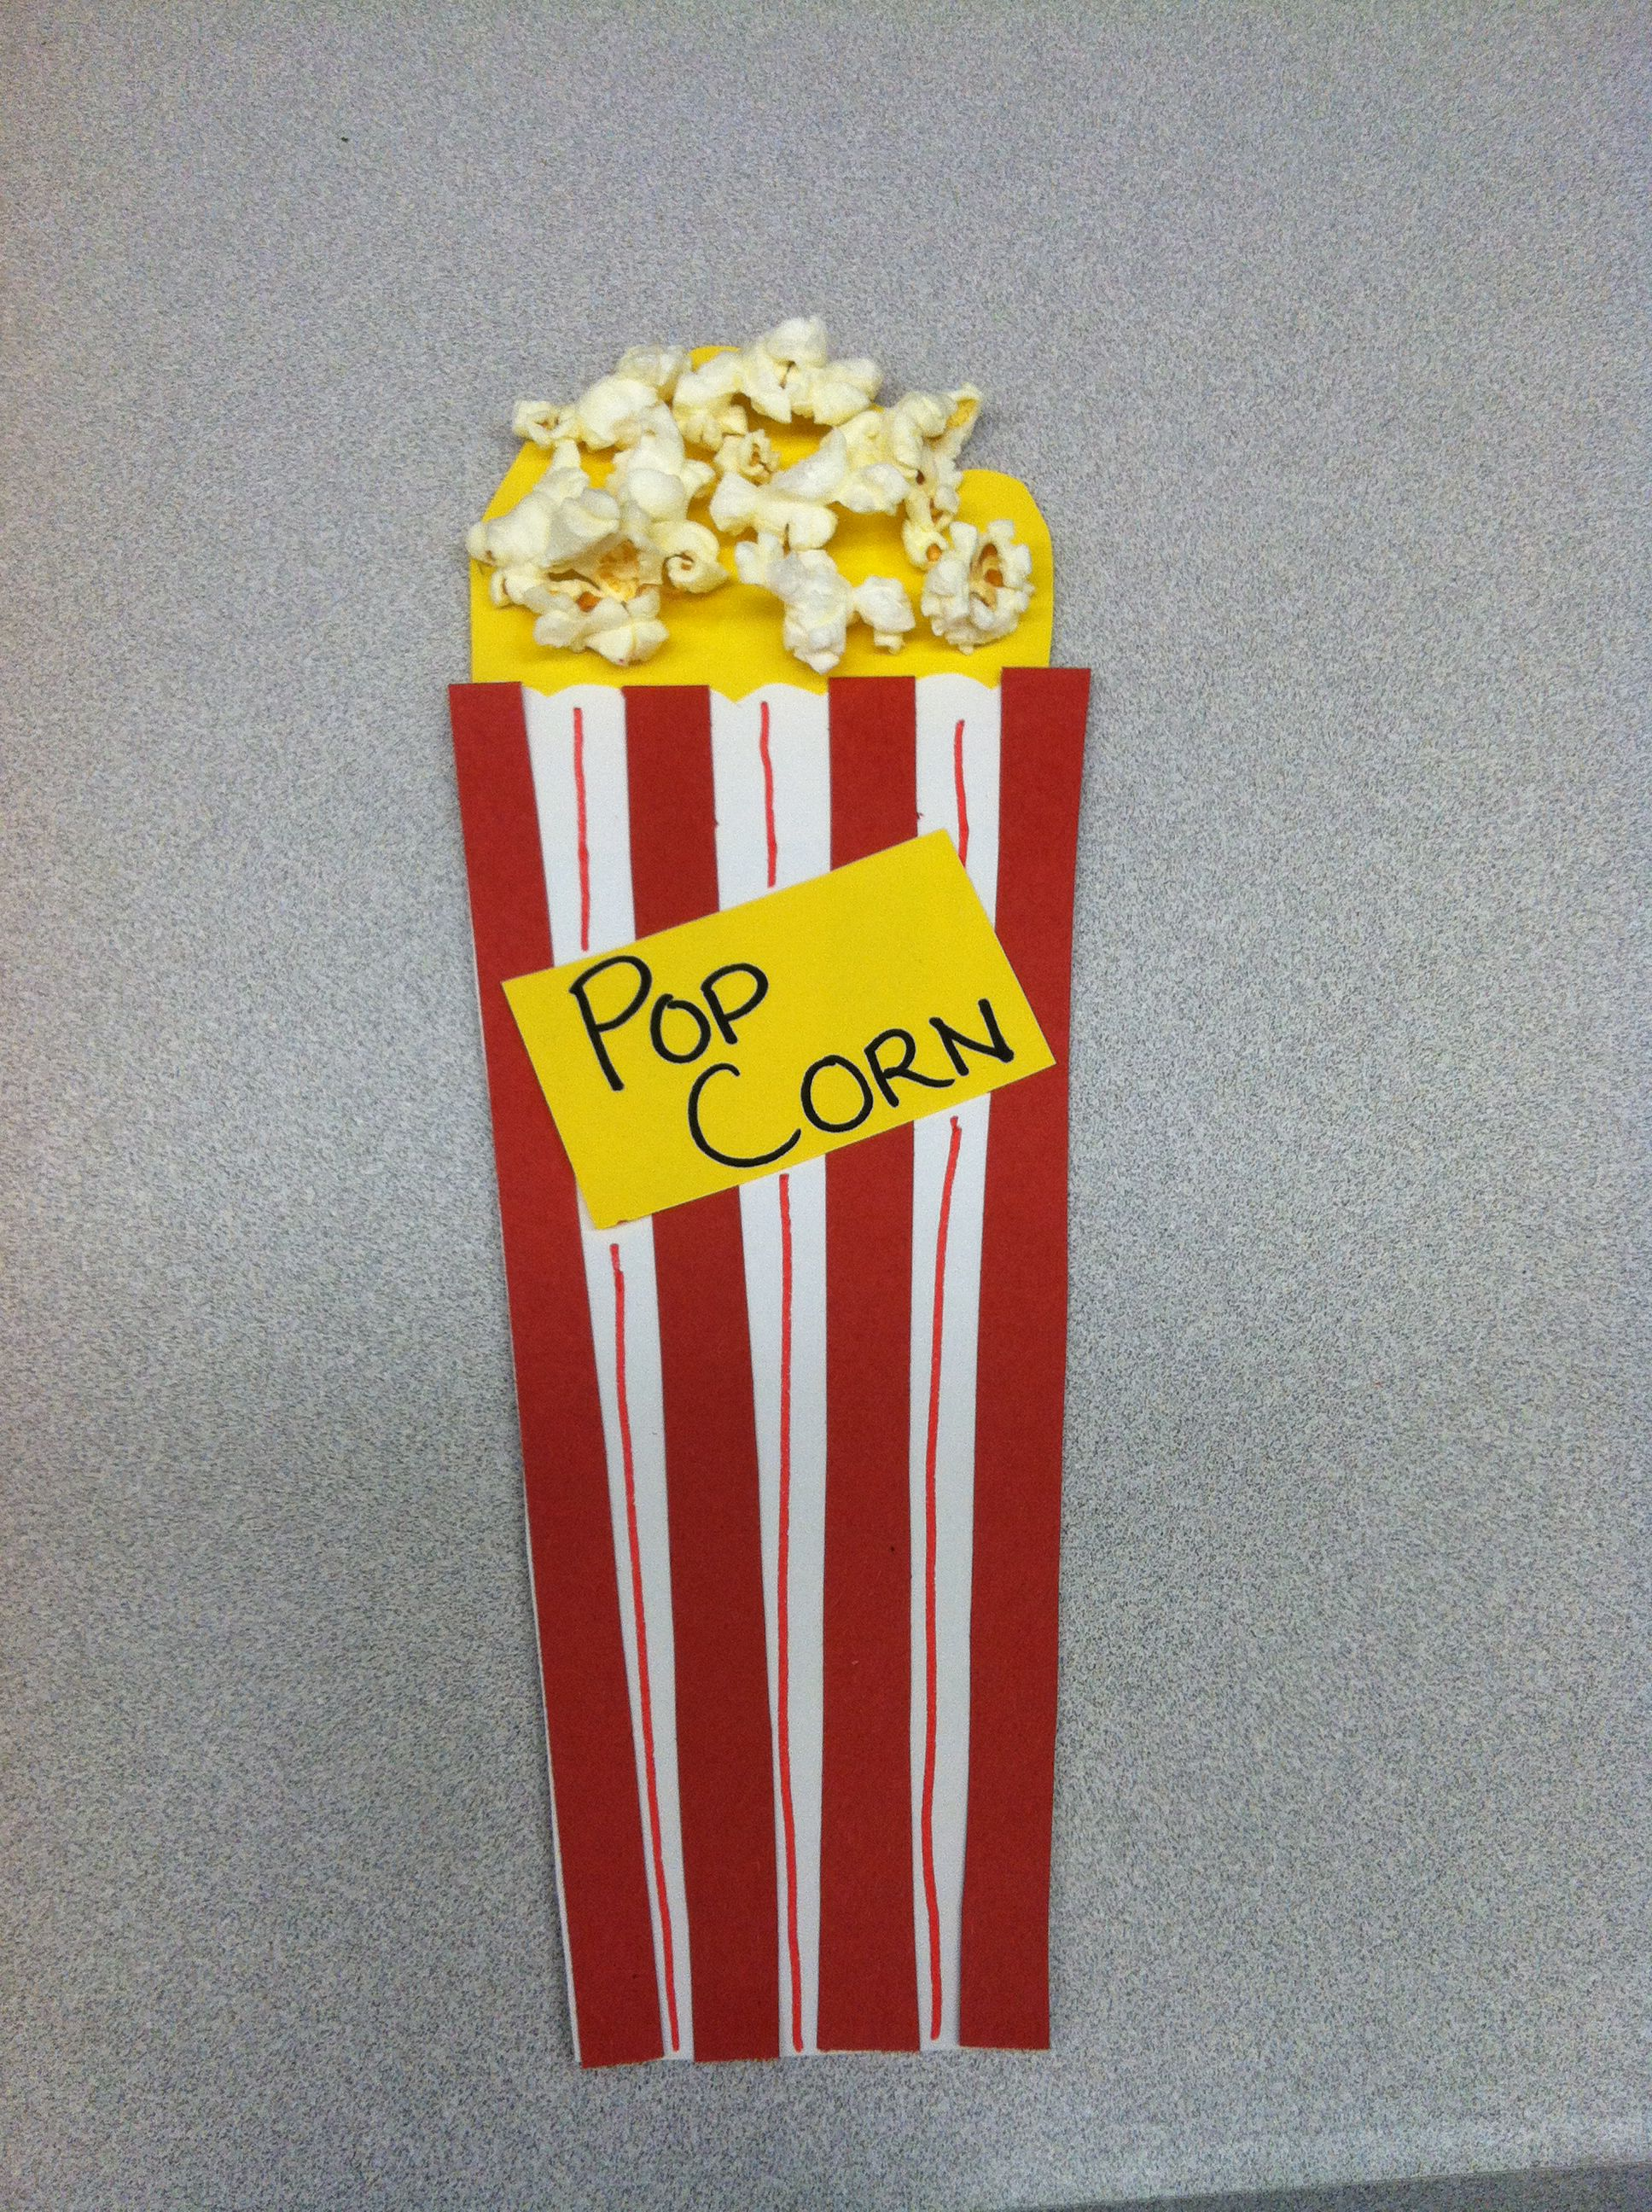 Red And White Construction Paper Print Out Pop Corn Words